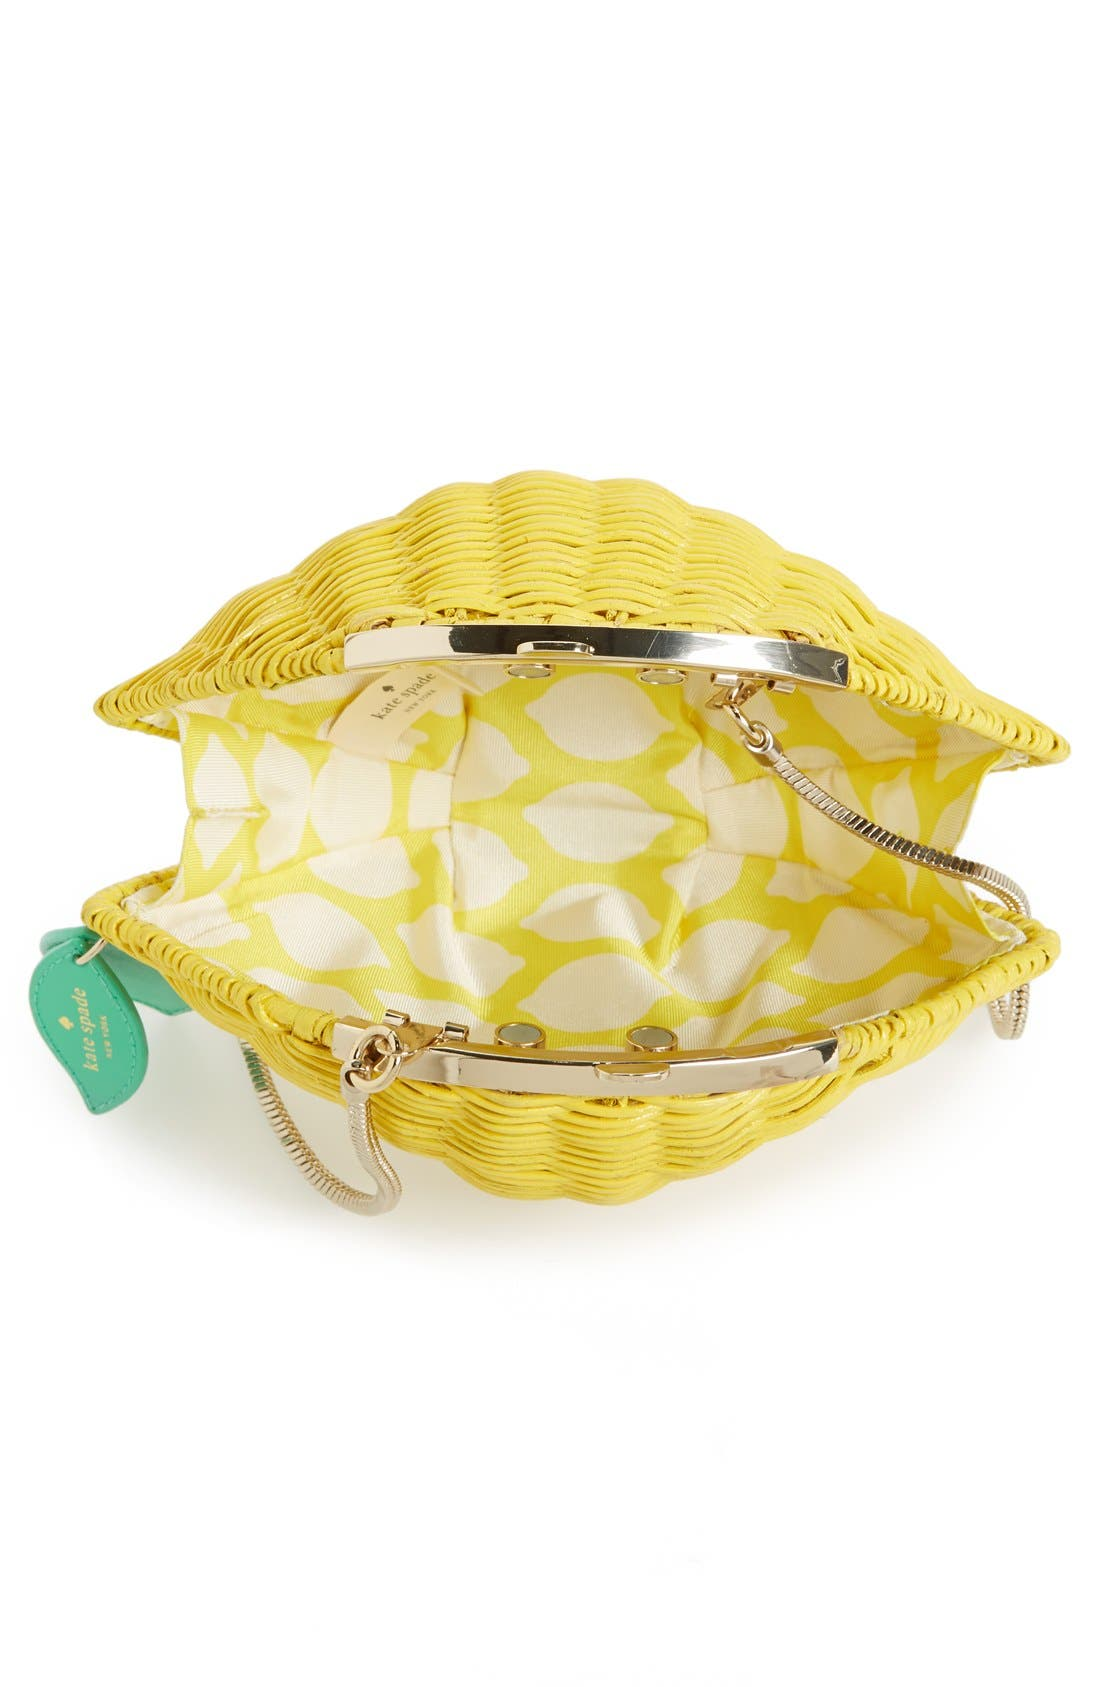 Alternate Image 3  - kate spade new york 'vita riva' wicker lemon crossbody bag